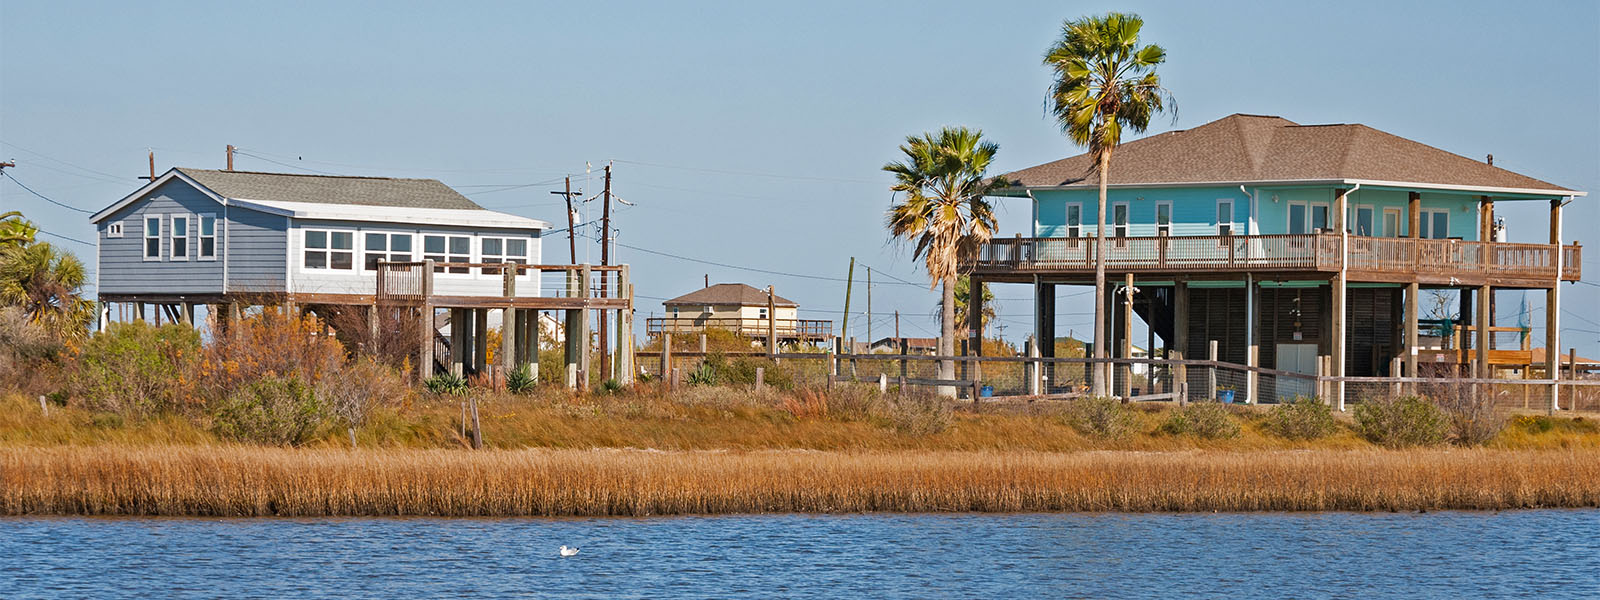 Waterfront, Houses, Houston, Texas, Galeston